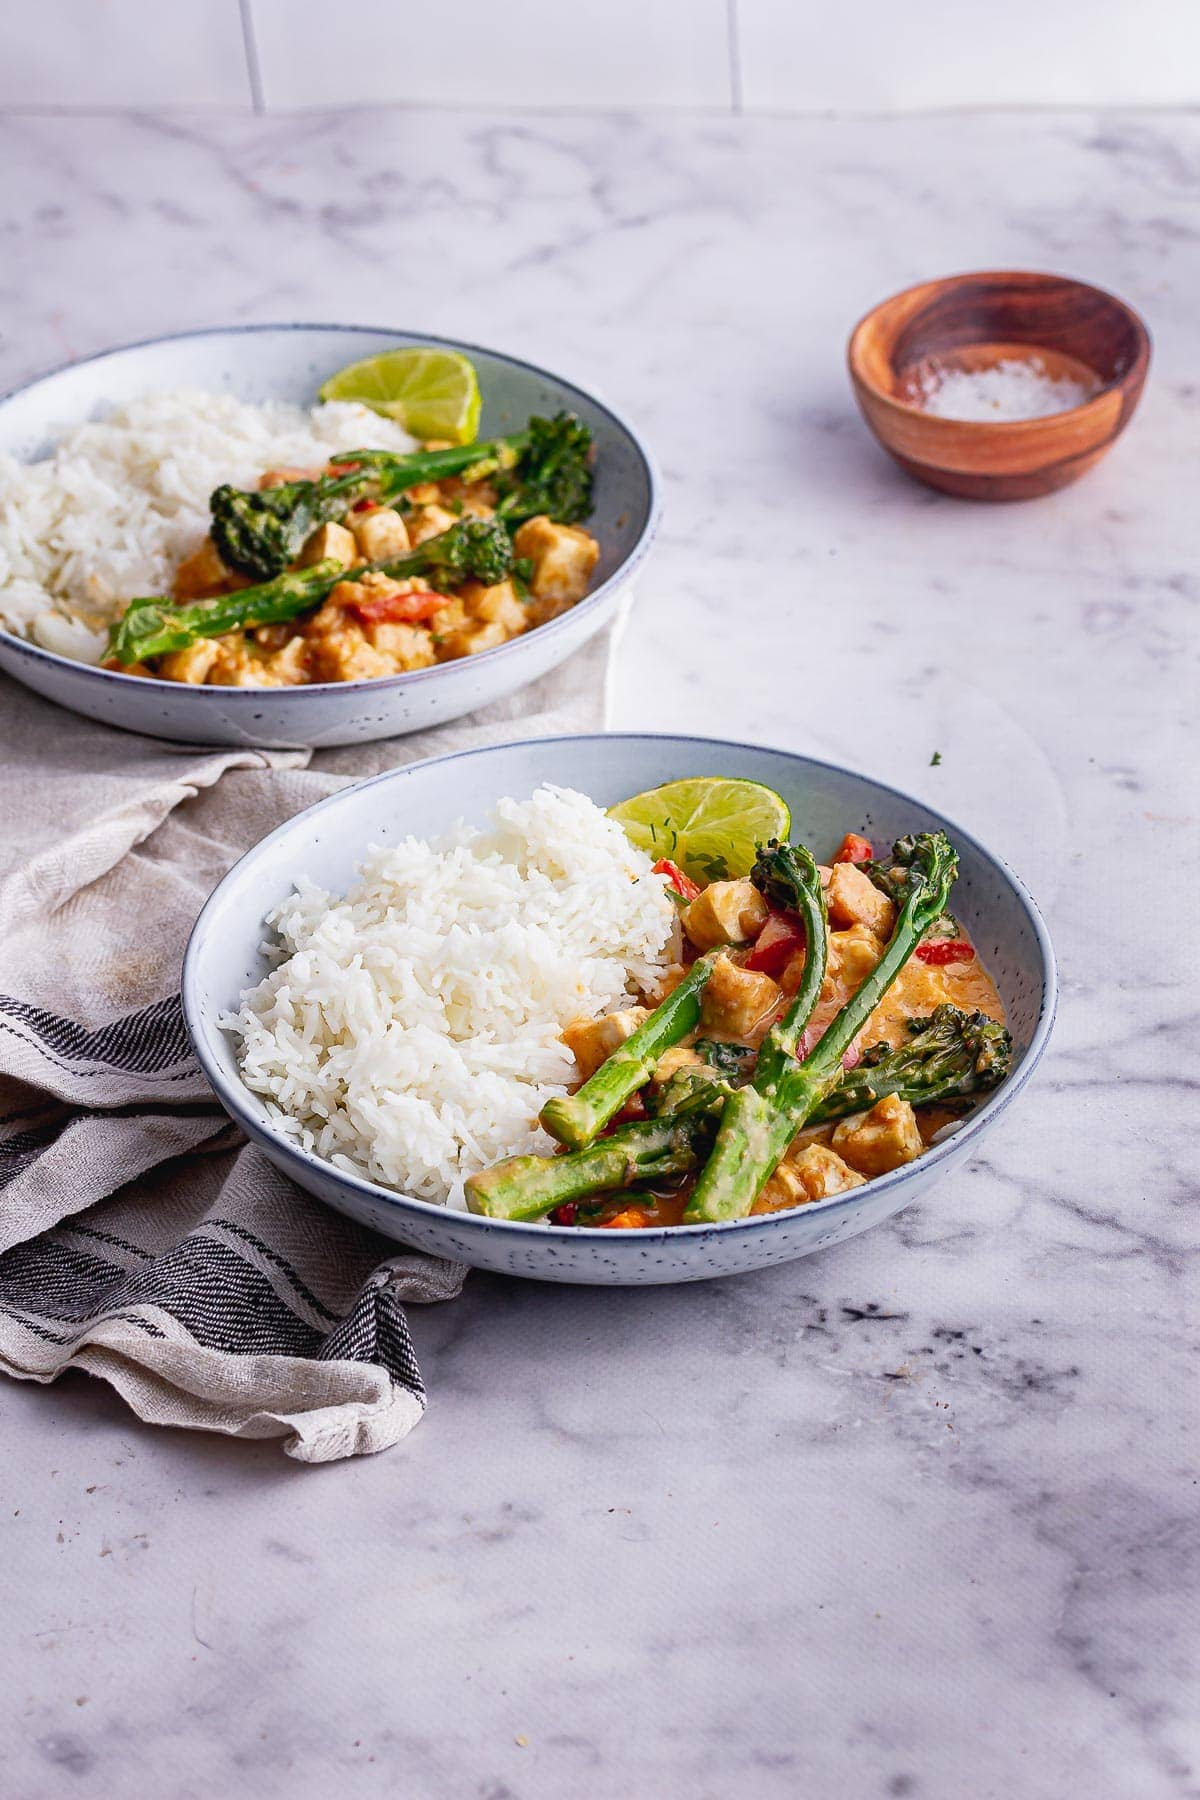 Blue bowls of peanut vegetable curry with rice on a marble surface